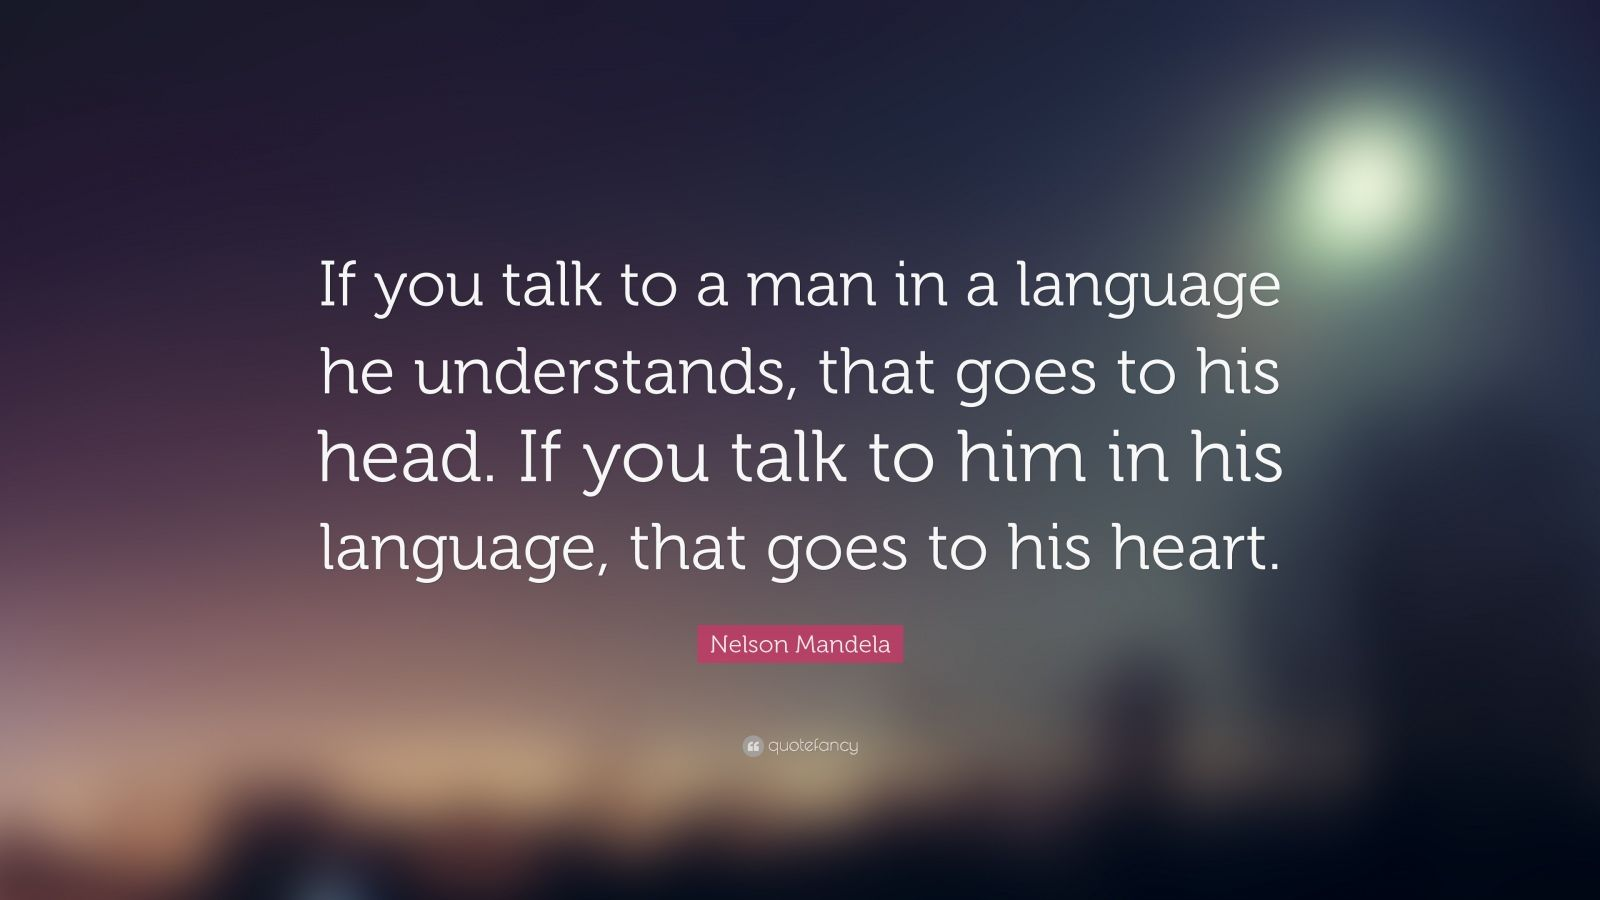 """Nelson Mandela Quote: """"If you talk to a man in a language he understands, that goes to his head. If you talk to him in his language, that goes to his heart."""""""